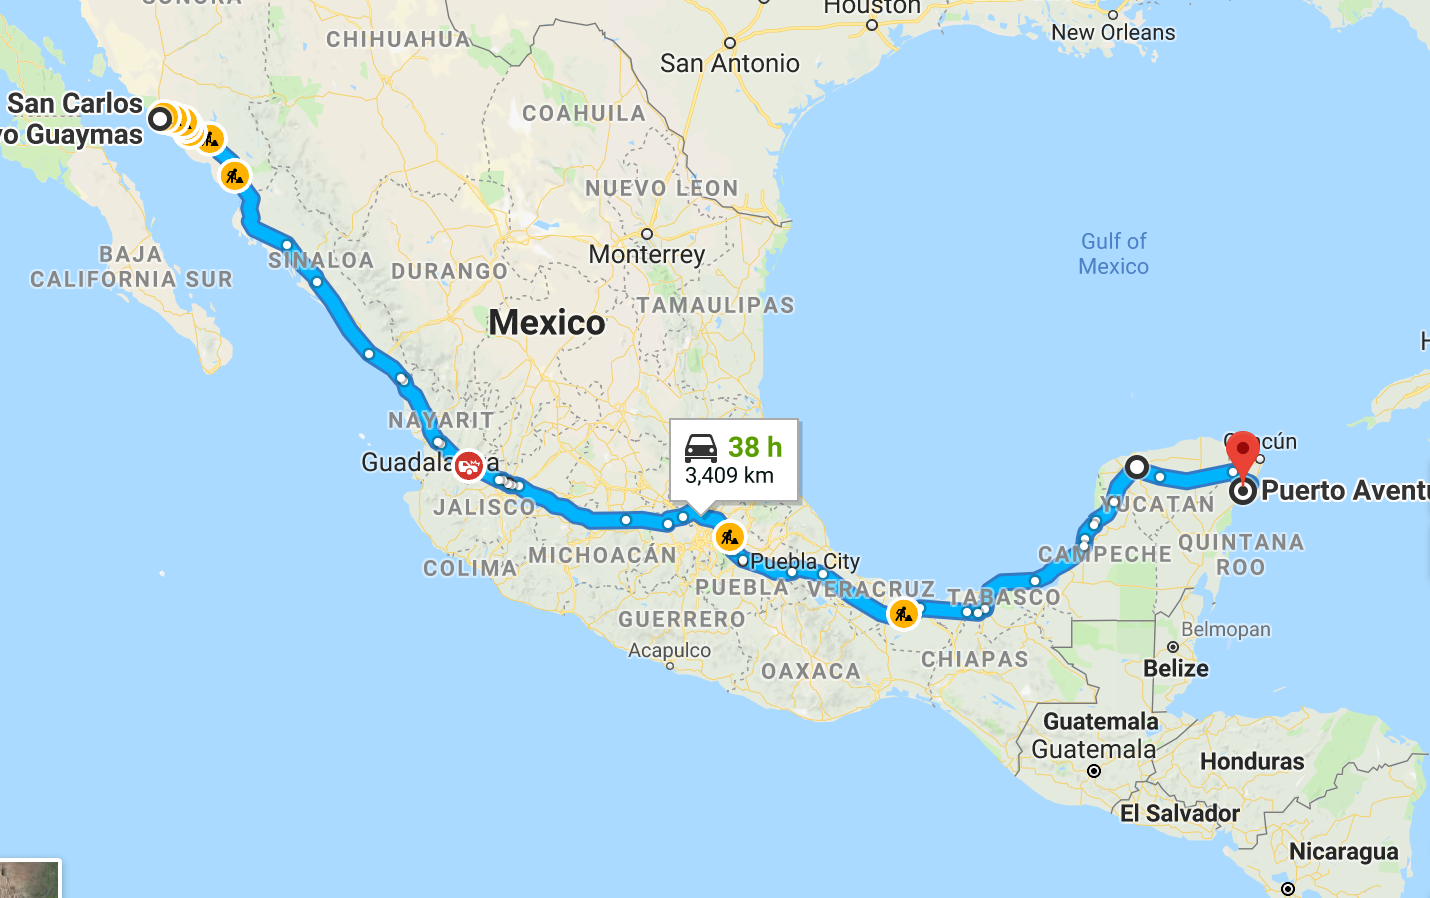 we travelled 3400 kms across mexico with 43 toll booth stops at a cost of 285 cdn not including payment at a blockade allowing us to pass through